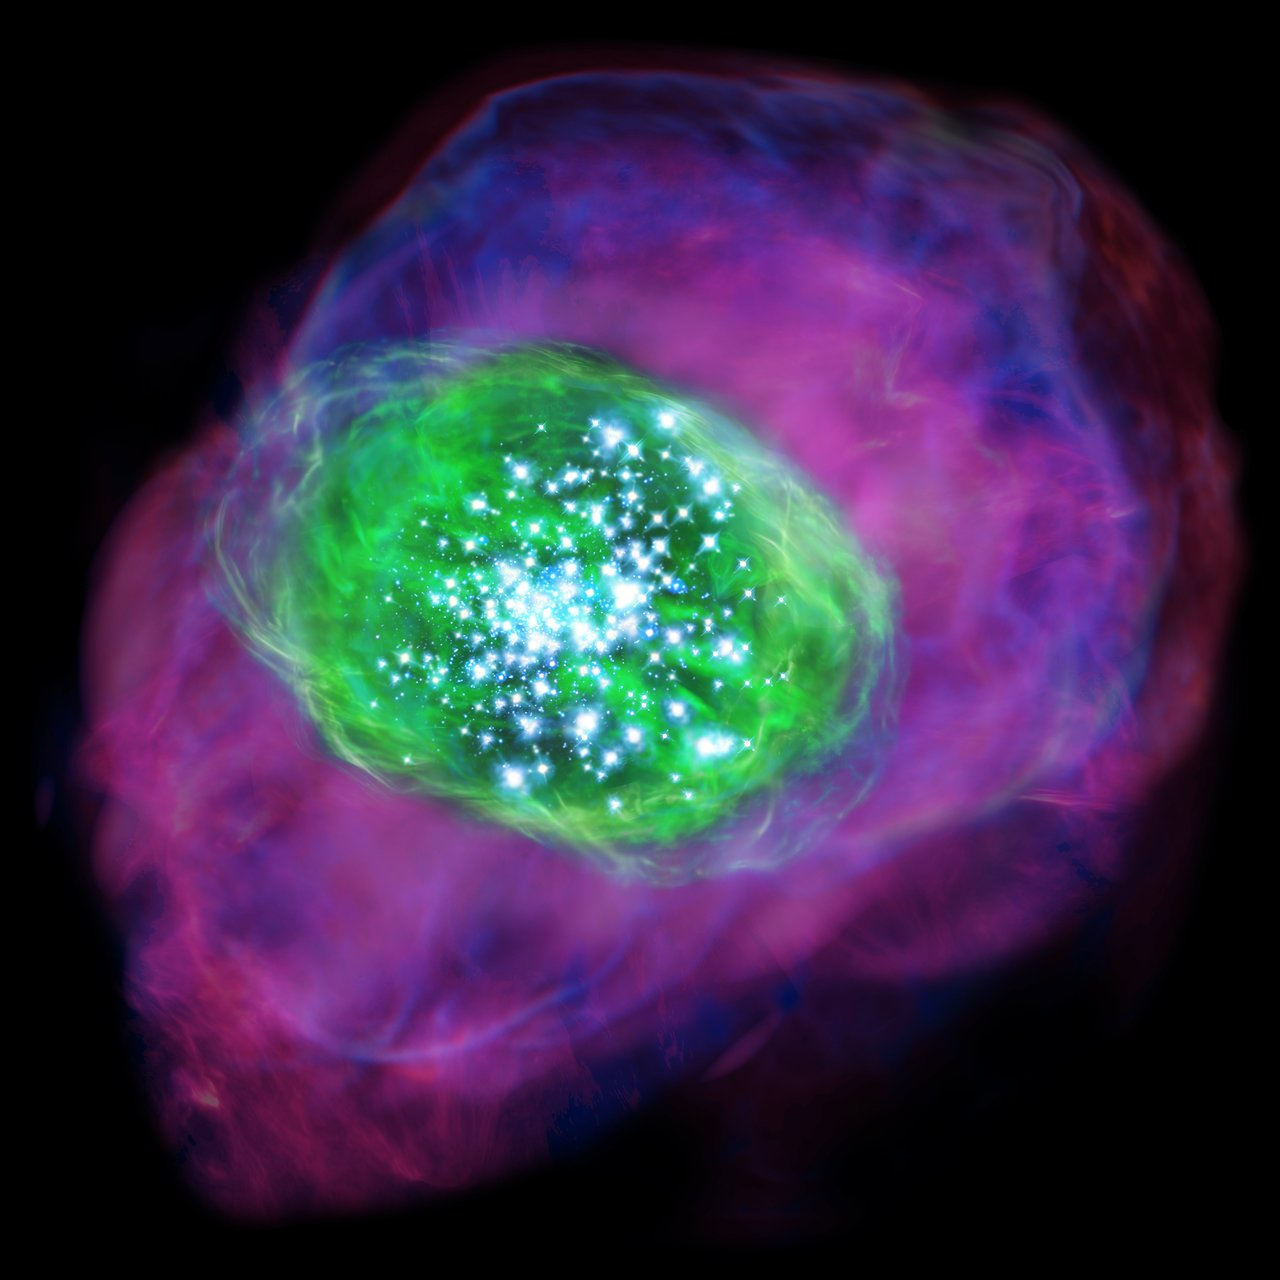 Many young bright stars are located in the galaxy and ionise the gas inside and around the galaxy. Green colour indicates the ionised oxygen detected by ALMA, whereas purple shows the distribution of ionised hydrogen detected by the Subaru Telescope. - Credit: NAOJ